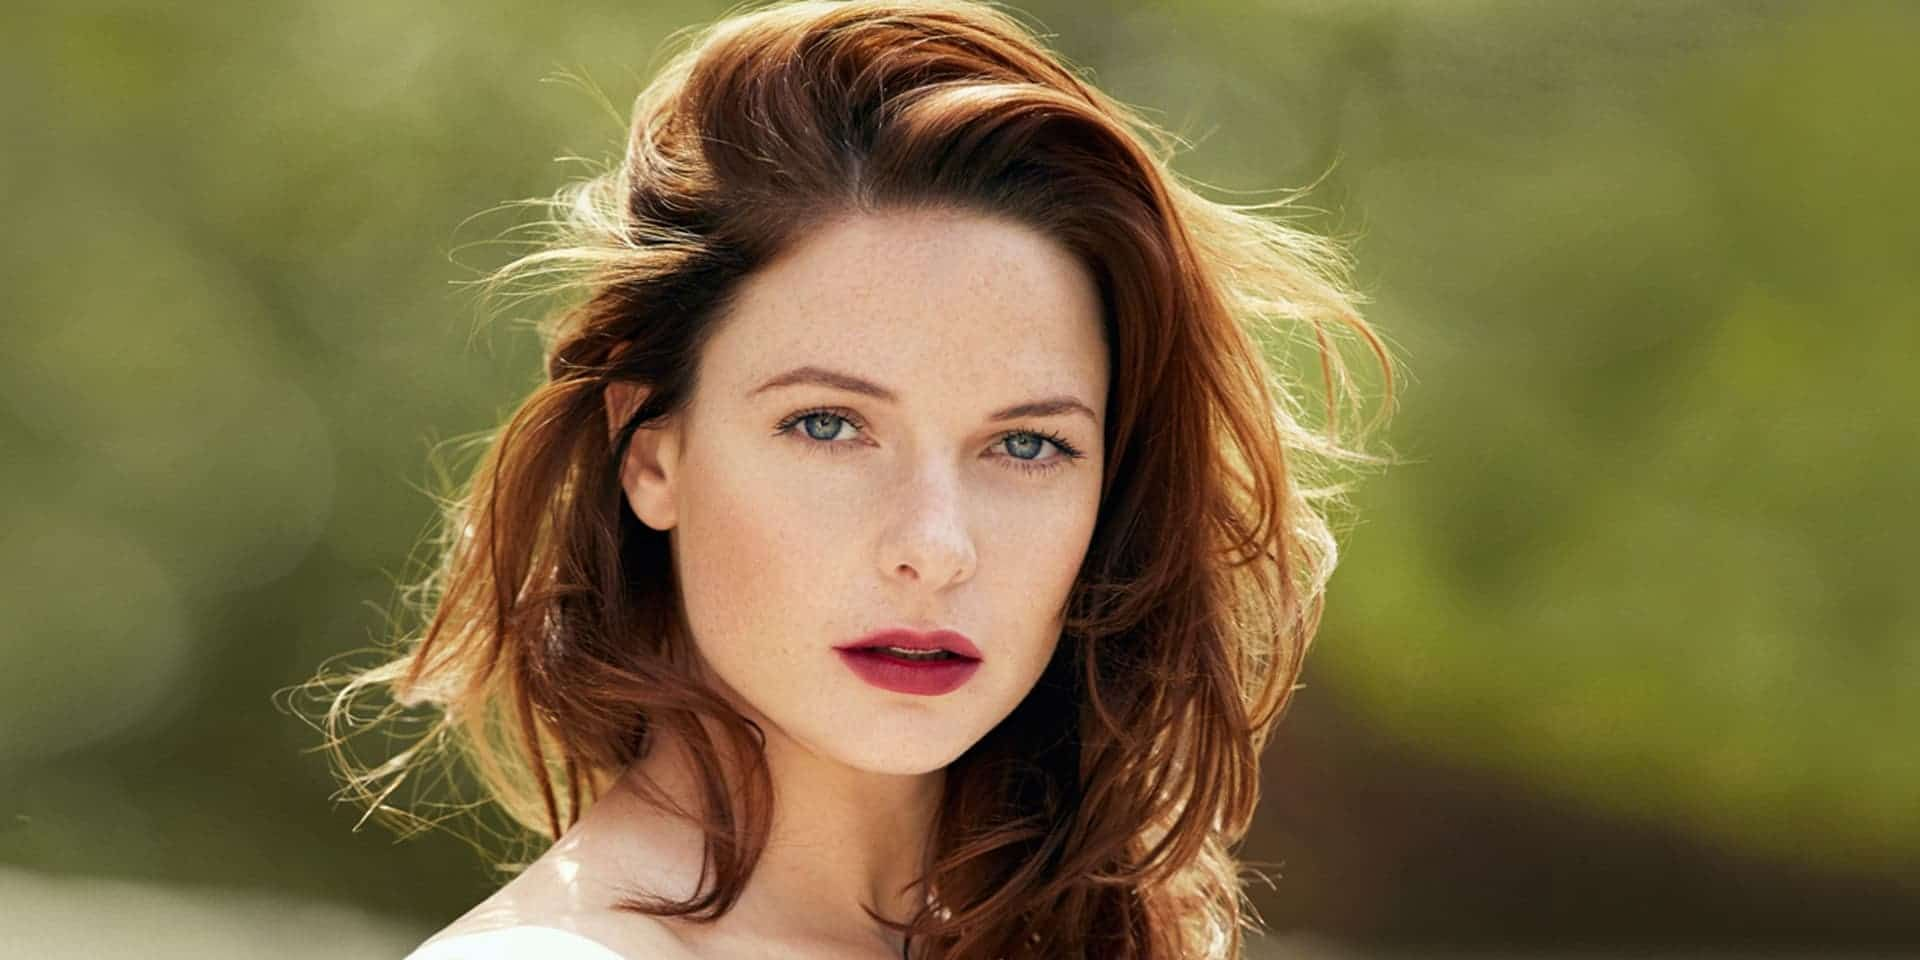 Who's actress Rebecca Ferguson? Her Wiki: Husband, Age, Net